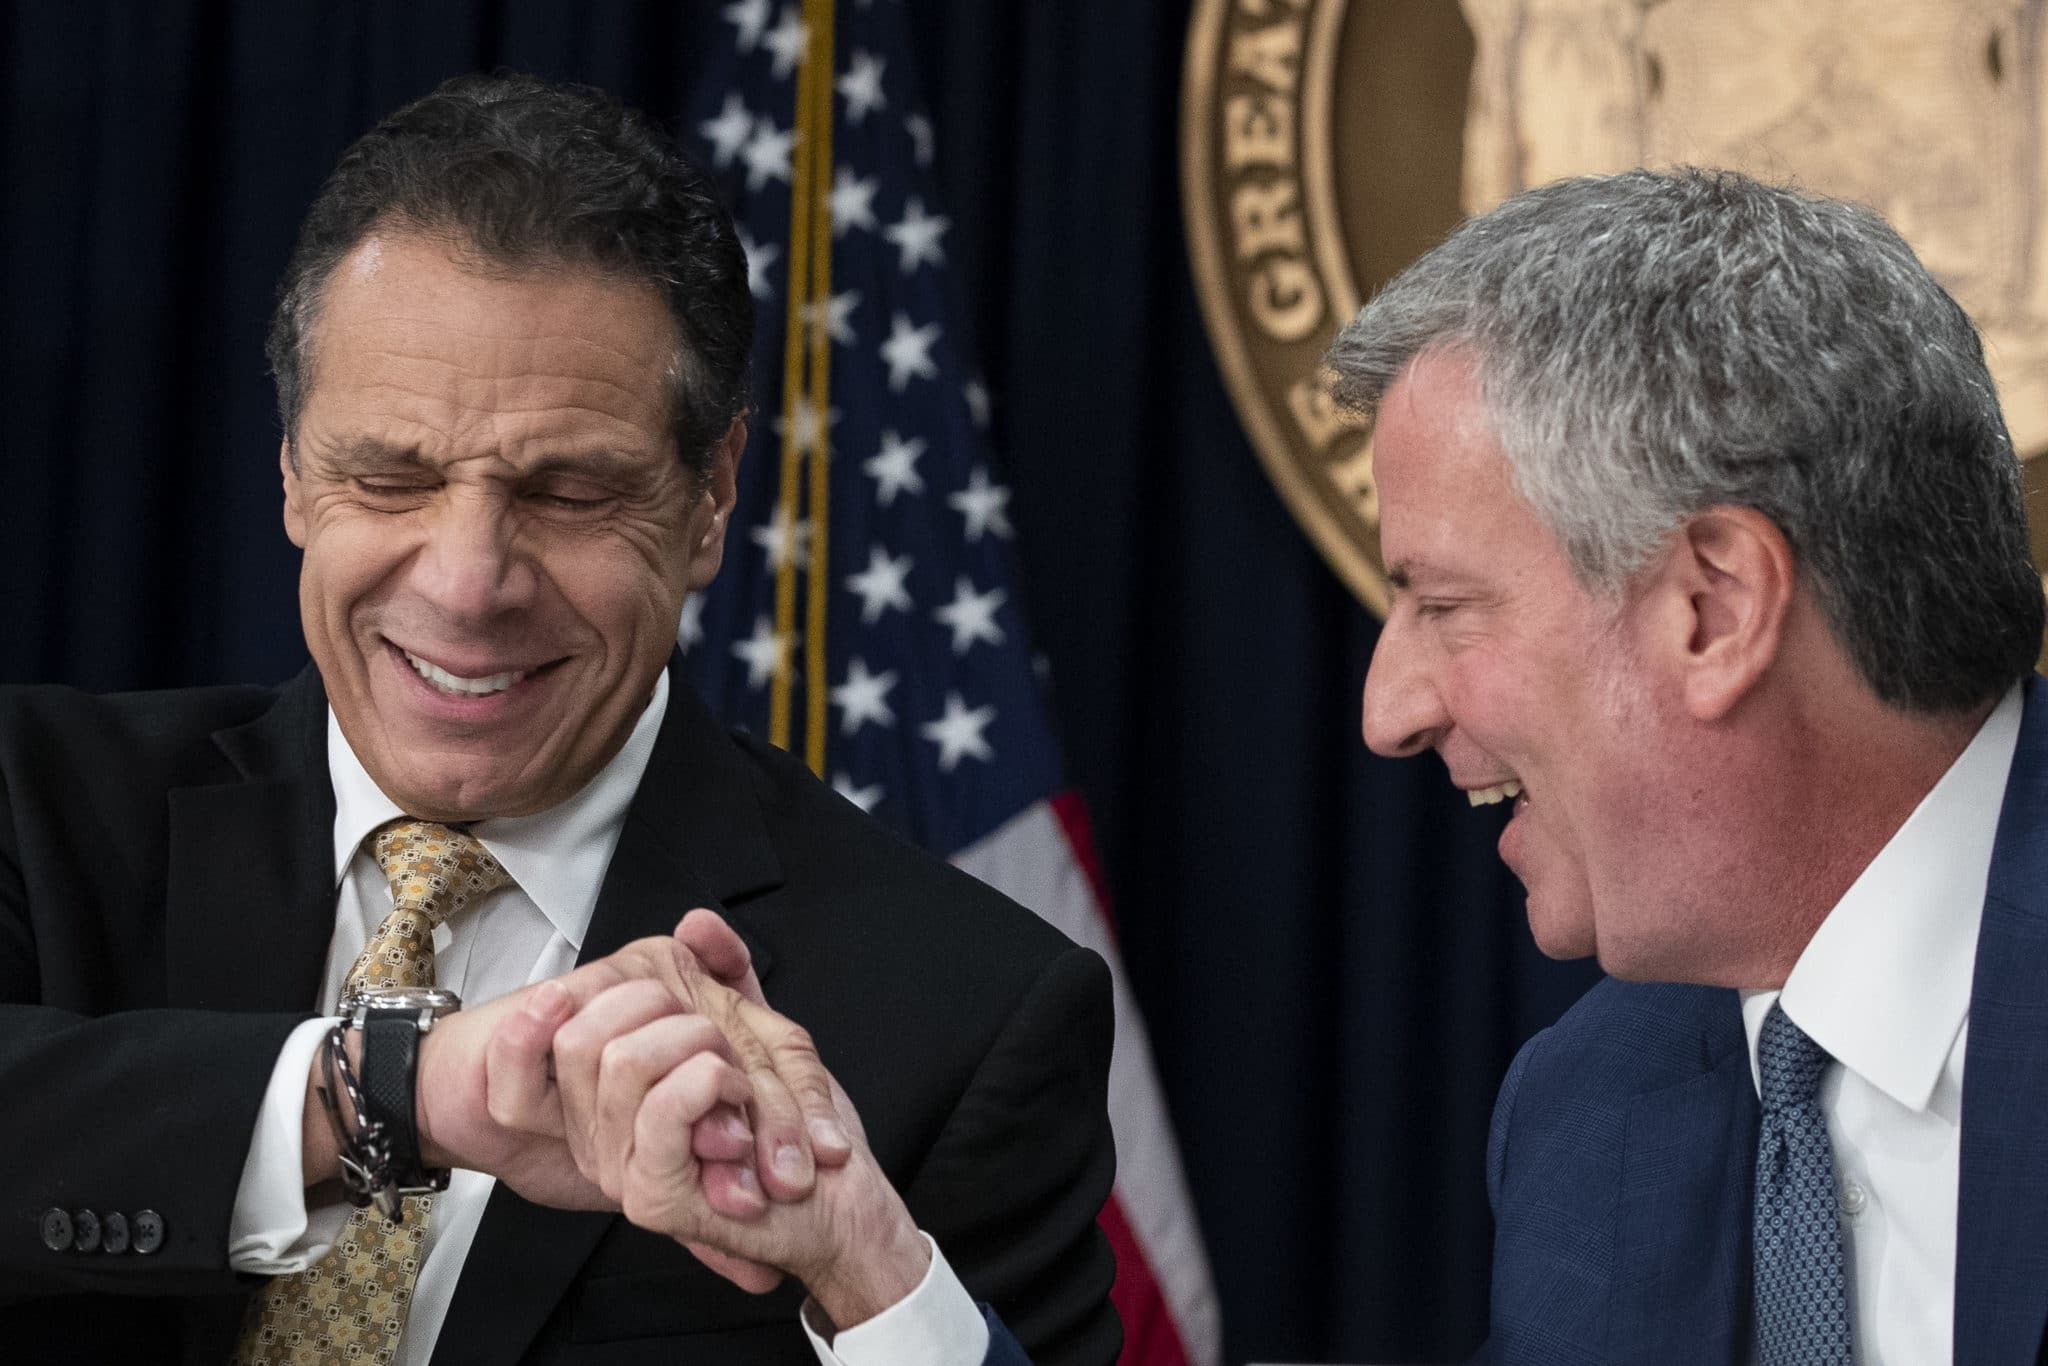 NYC Career Criminal Thanks Dems for Bail Reform After His 139th Arrest